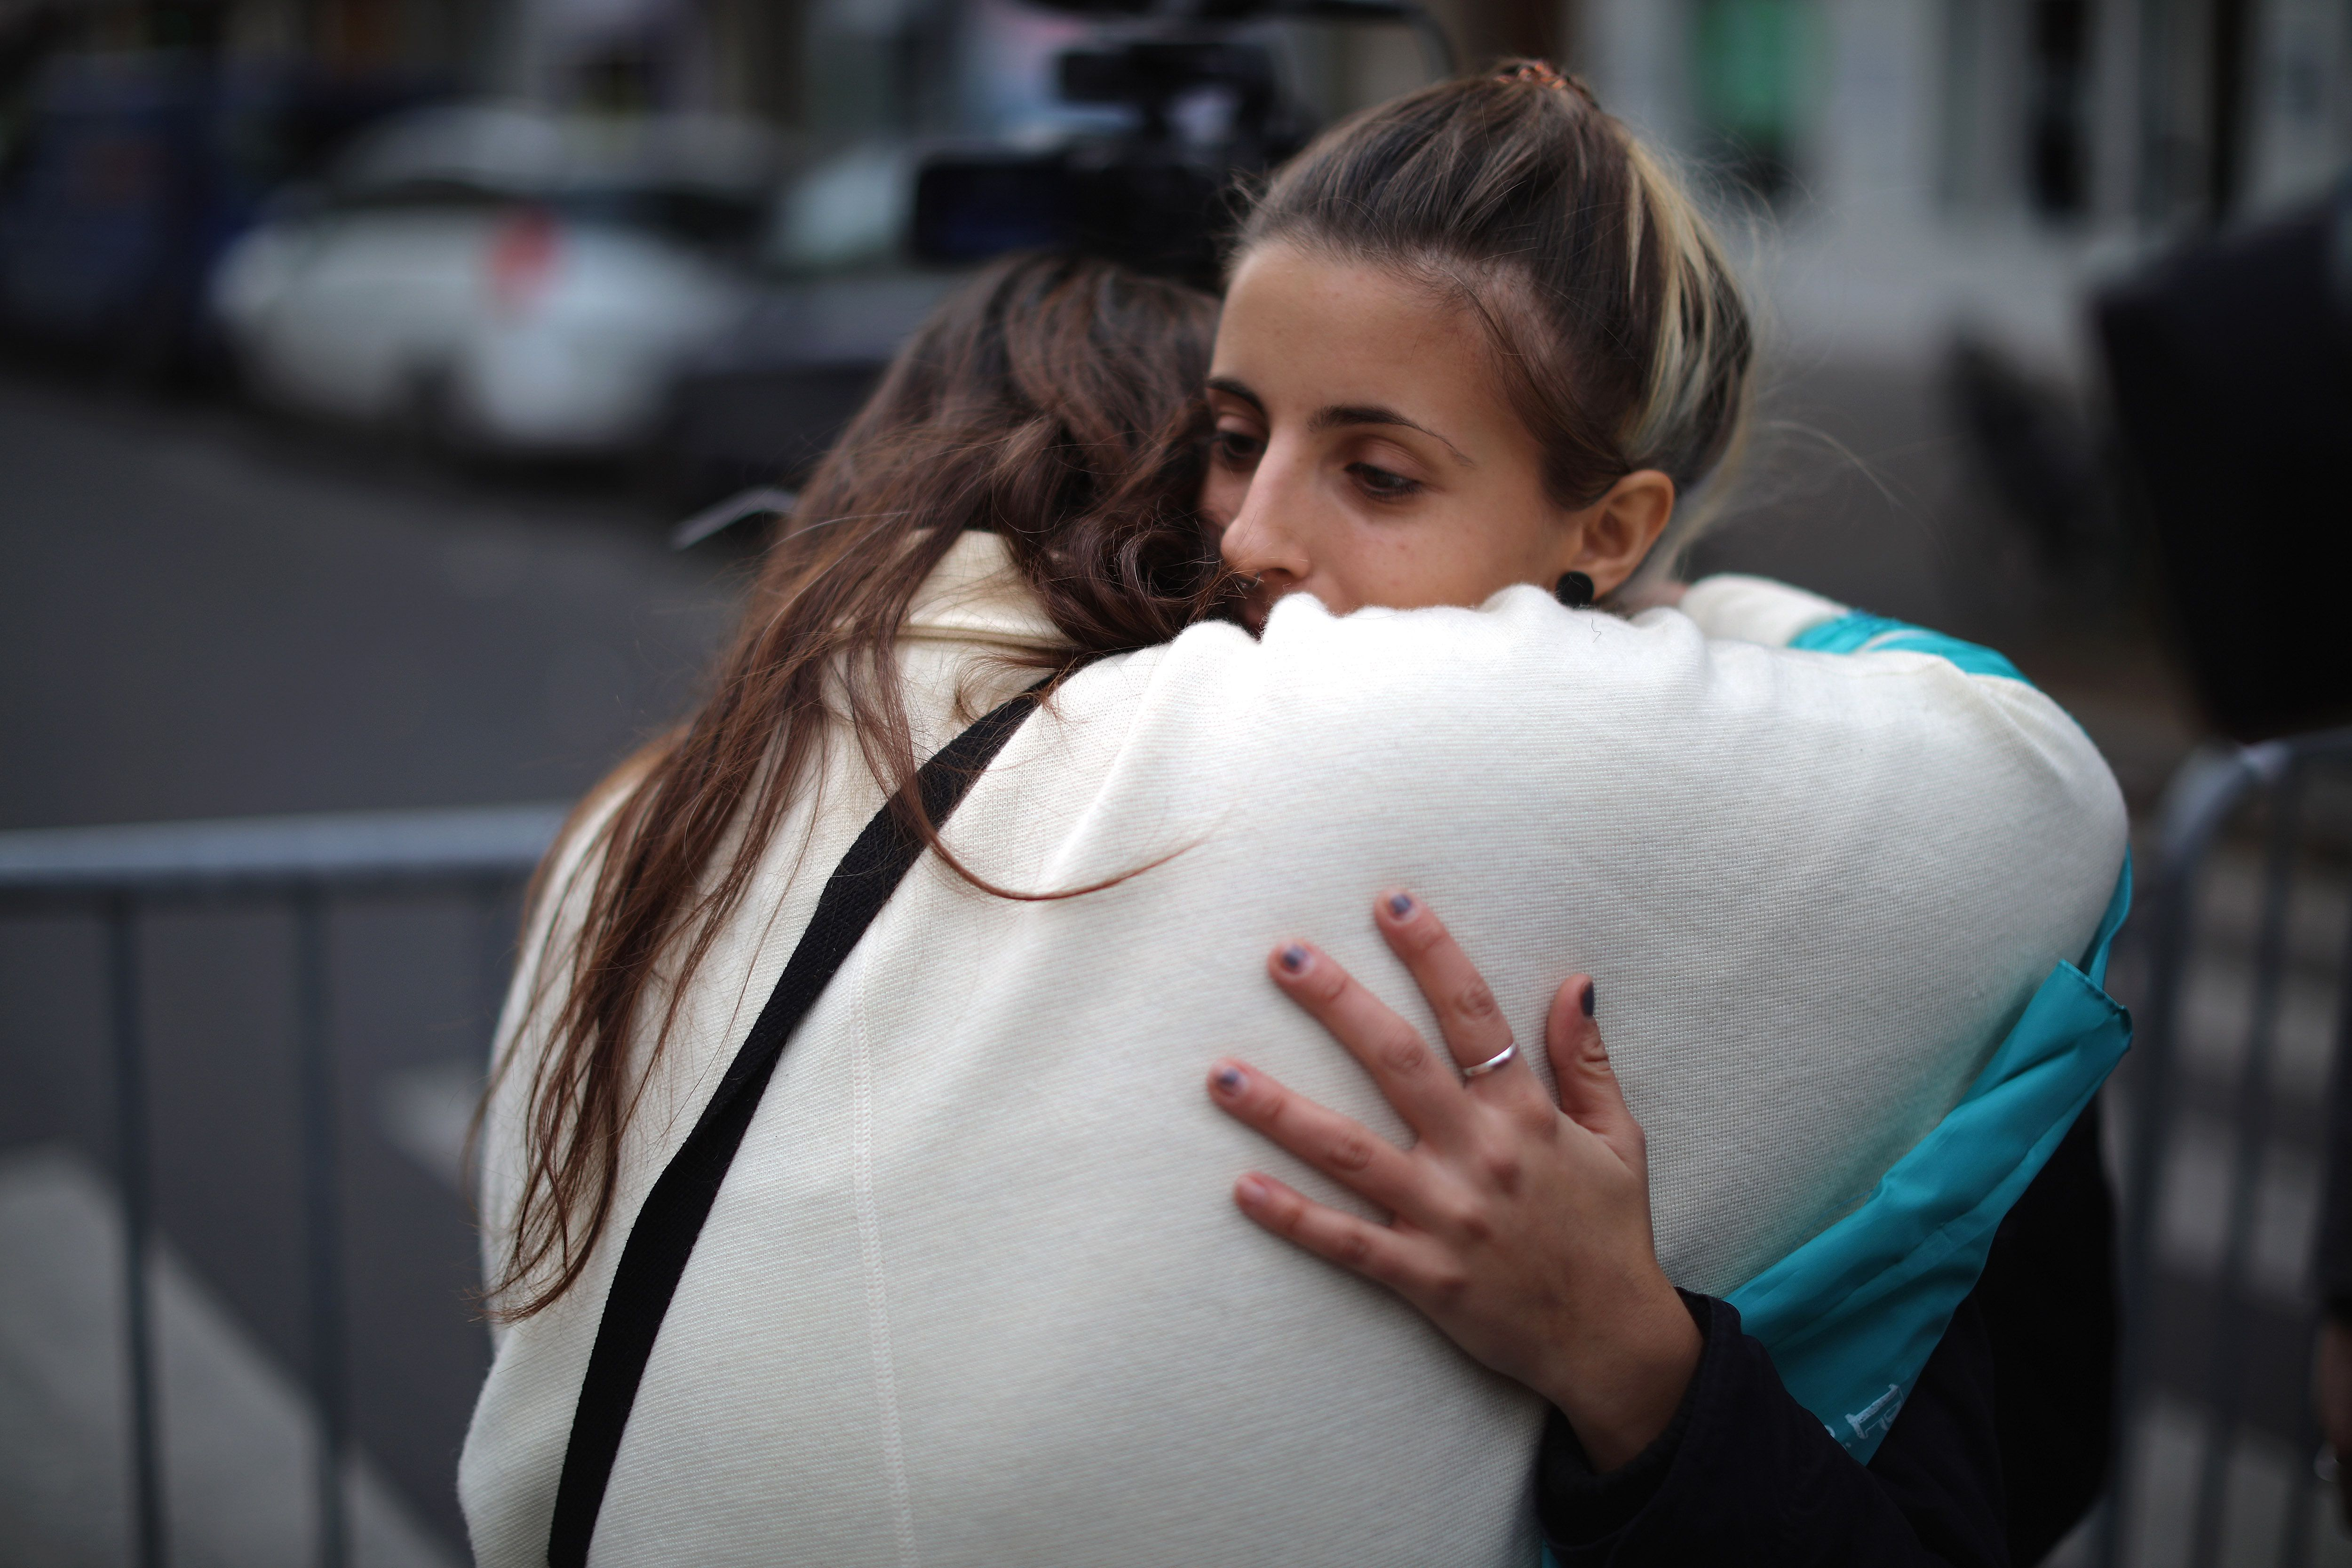 PARIS, FRANCE - NOVEMBER 14:  Women console each other near the scene of the Bataclan Theatre terrorist attack on November 14, 2015 in Paris, France. At least 120 people have been killed and over 200 injured, 80 of which seriously, following a series of terrorist attacks in the French capital.  (Photo by Christopher Furlong/Getty Images)